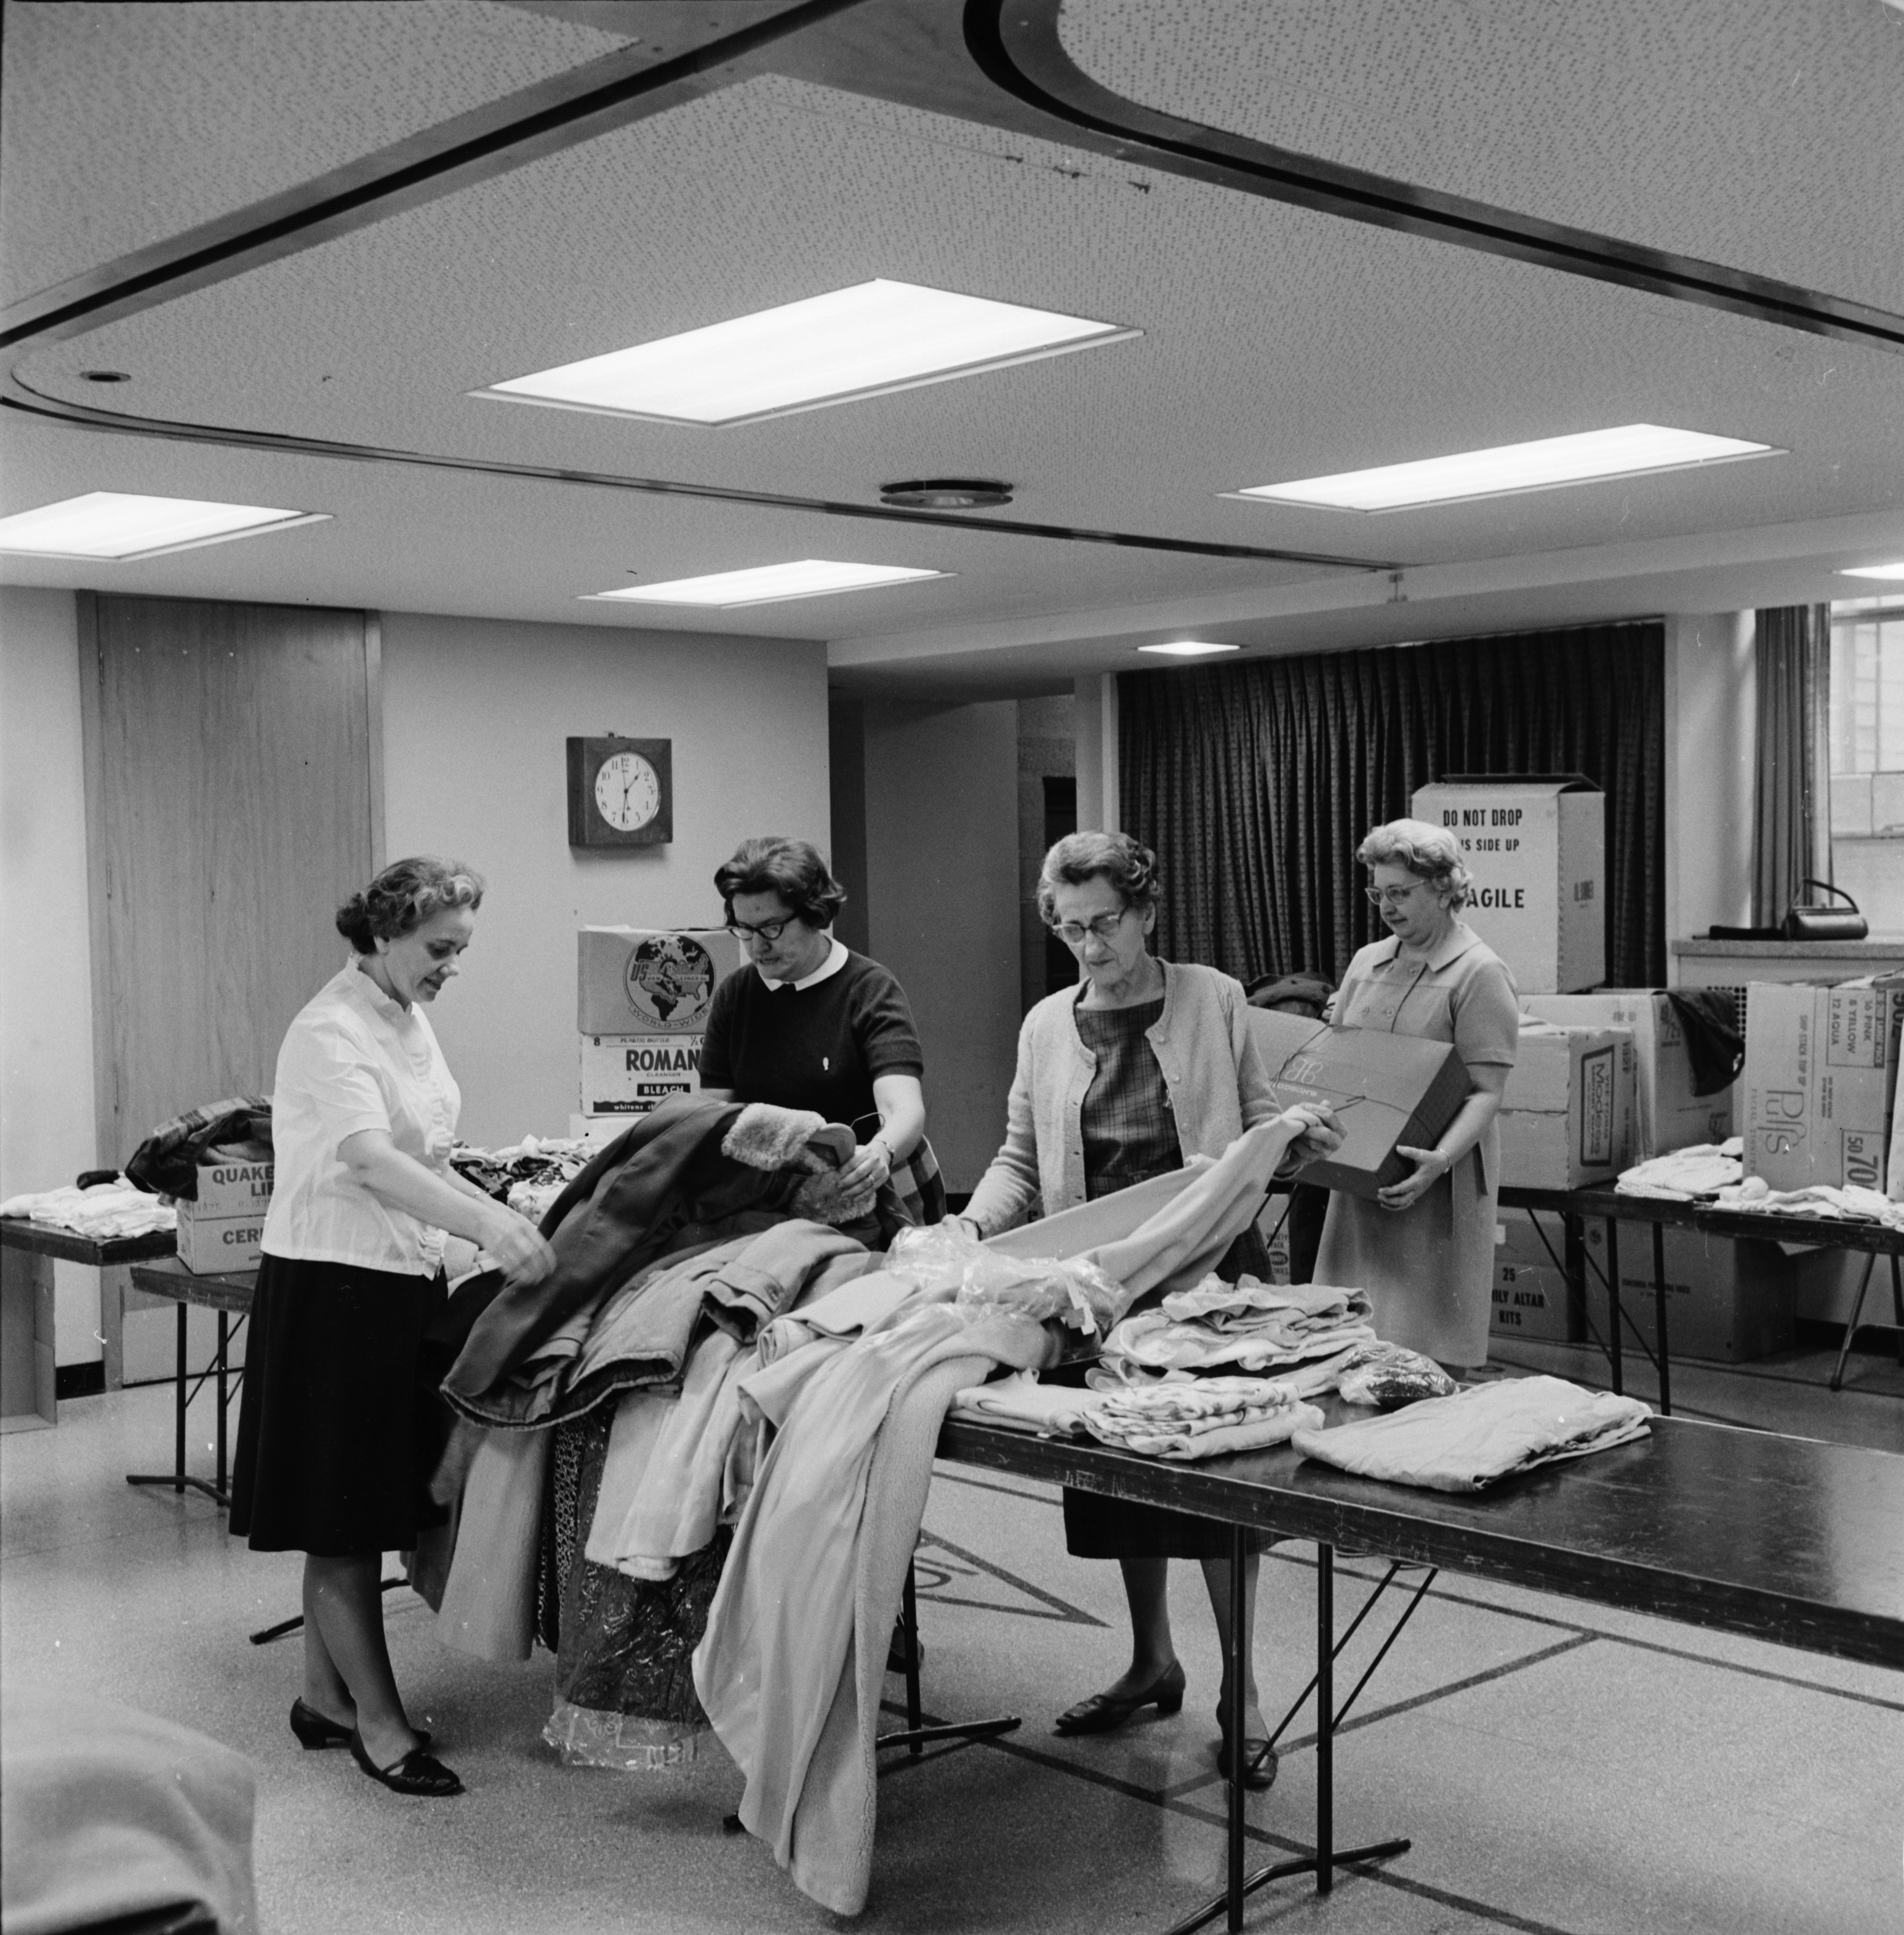 St. Paul's Lutheran Church Ladies Aid Packs Clothing for World Relief Drive, November 1967 image